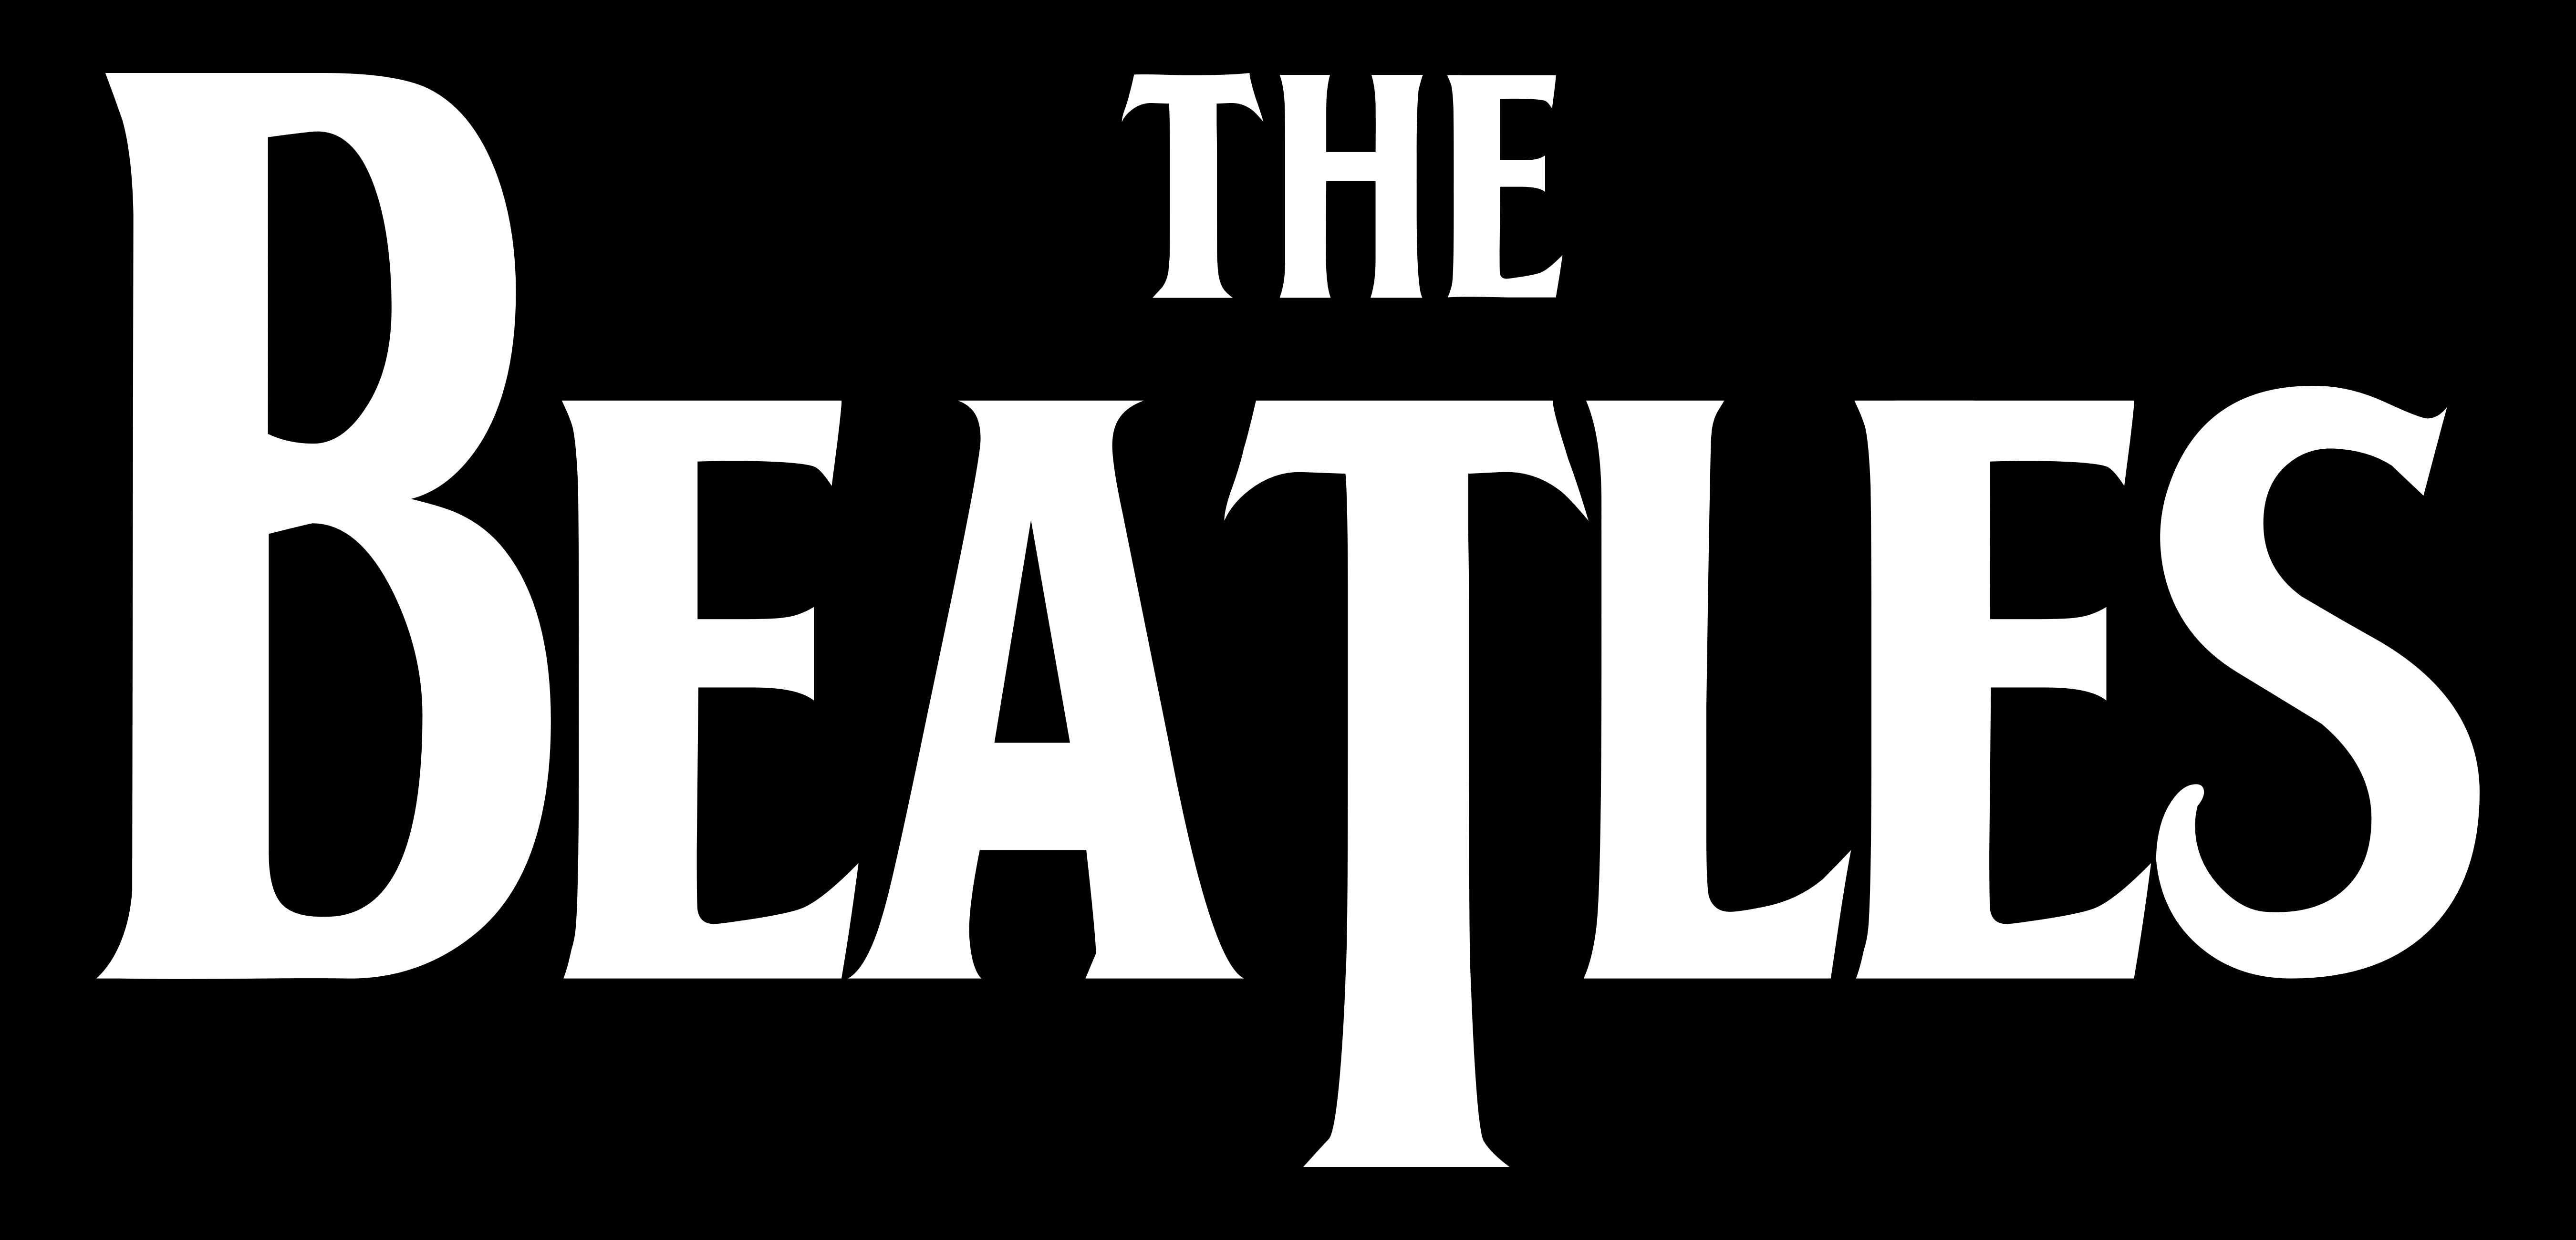 Beatles Logo Symbol Meaning History And Evolution